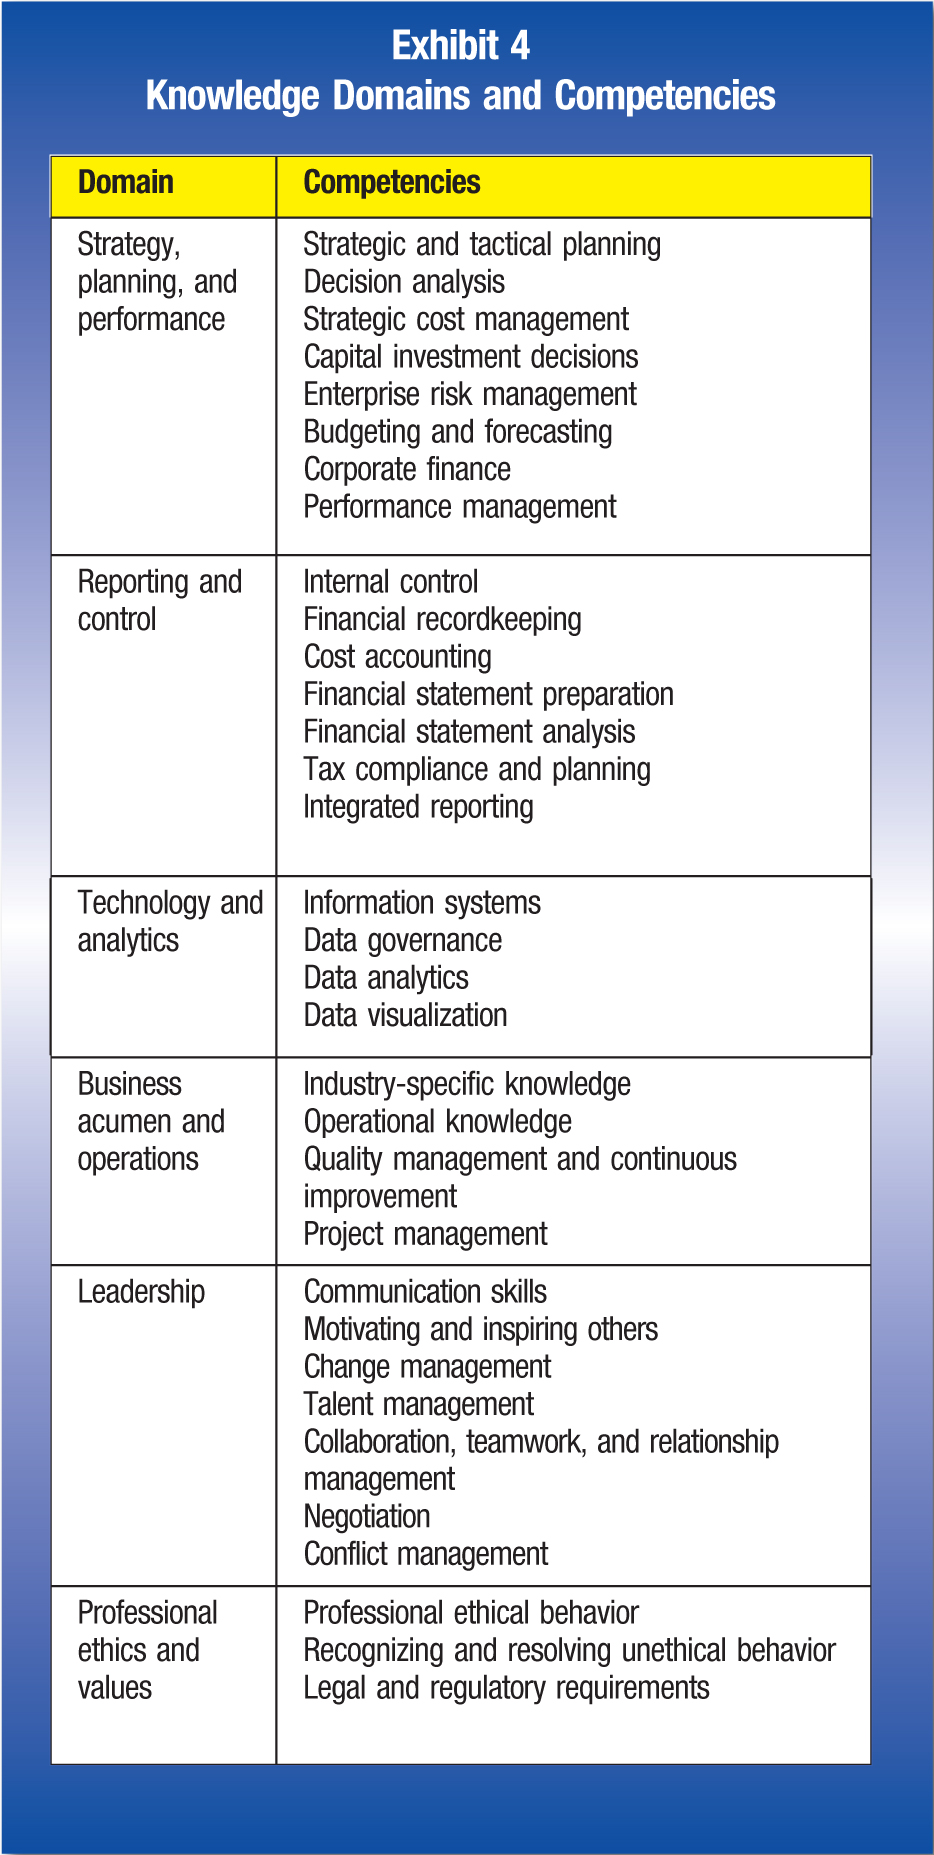 Domain; Competencies Strategy, planning, and performance; Strategic and tactical planning; Decision analysis; Strategic cost management; Capital investment decisions; Enterprise risk management; Budgeting and forecasting; Corporate finance; Performance management Reporting and control; Internal control; Financial recordkeeping; Cost accounting; Financial statement preparation; Financial statement analysis; Tax compliance and planning; Integrated reporting Technology and analytics; Information systems; Data governance; Data analytics; Data visualization Business acumen and operations; Industry-specific knowledge; Operational knowledge; Quality management and continuous improvement; Project management Leadership; Communication skills; Motivating and inspiring others; Change management; Talent management; Collaboration, teamwork, and relationship management; Negotiation; Conflict management Professional ethics and values; Professional ethical behavior; Recognizing and resolving unethical behavior; Legal and regulatory requirements